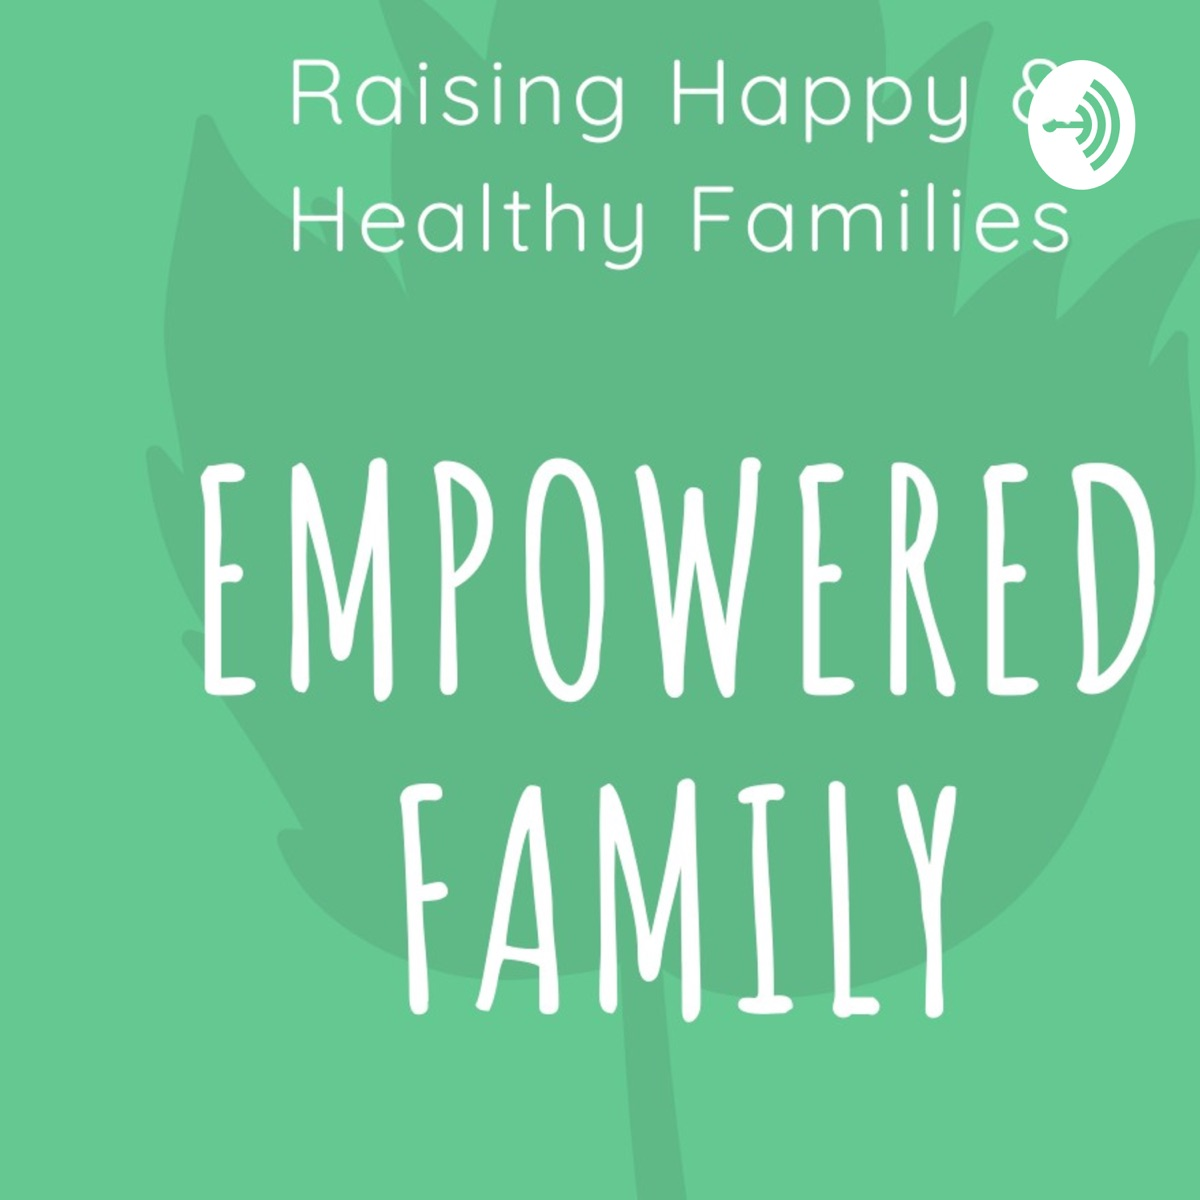 Empowered Family